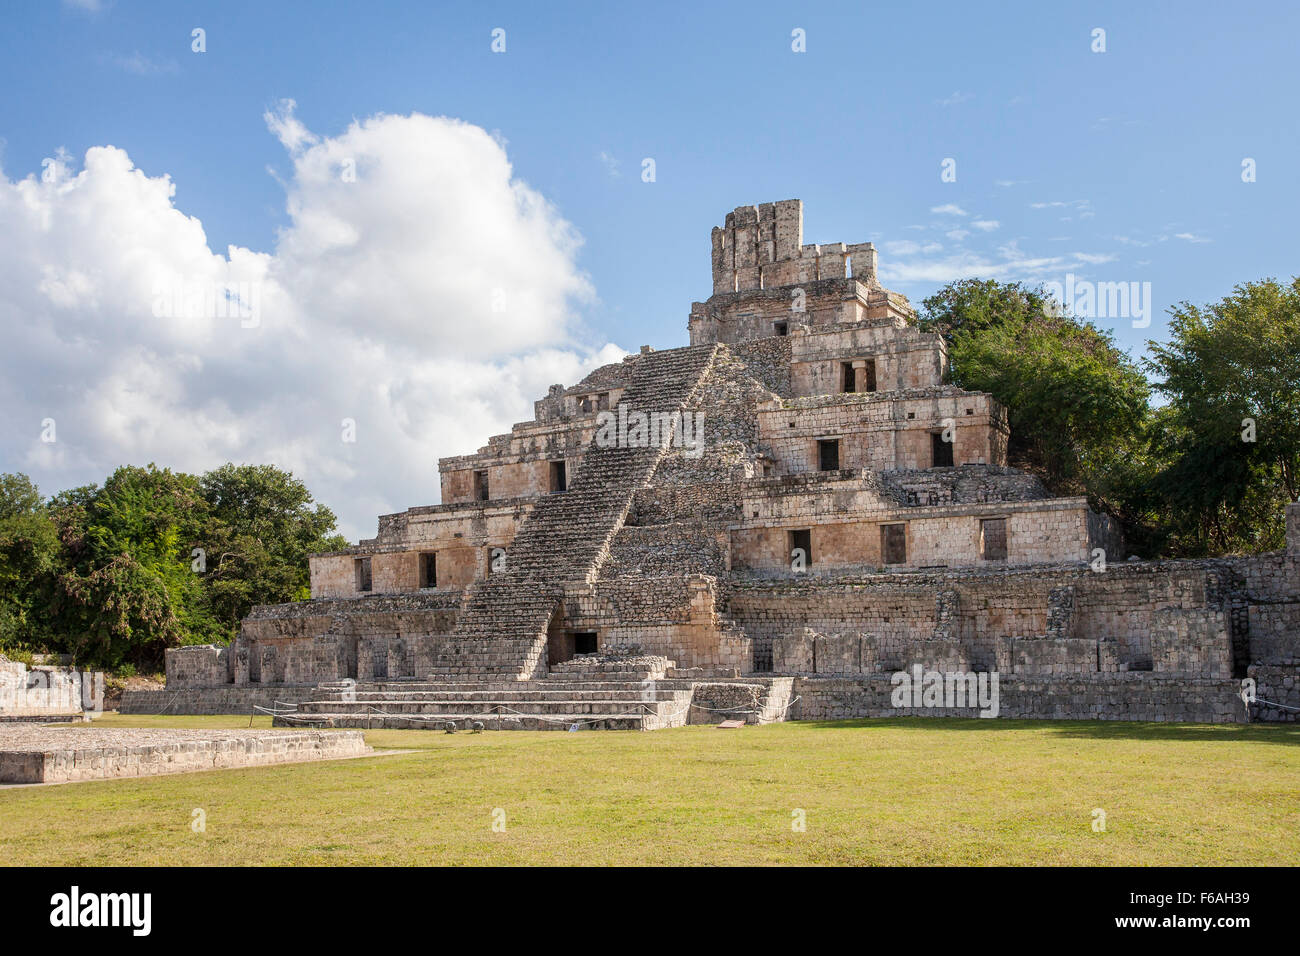 The Five Story Pyramid at the Mayan ruins of Edzna, Campeche. - Stock Image